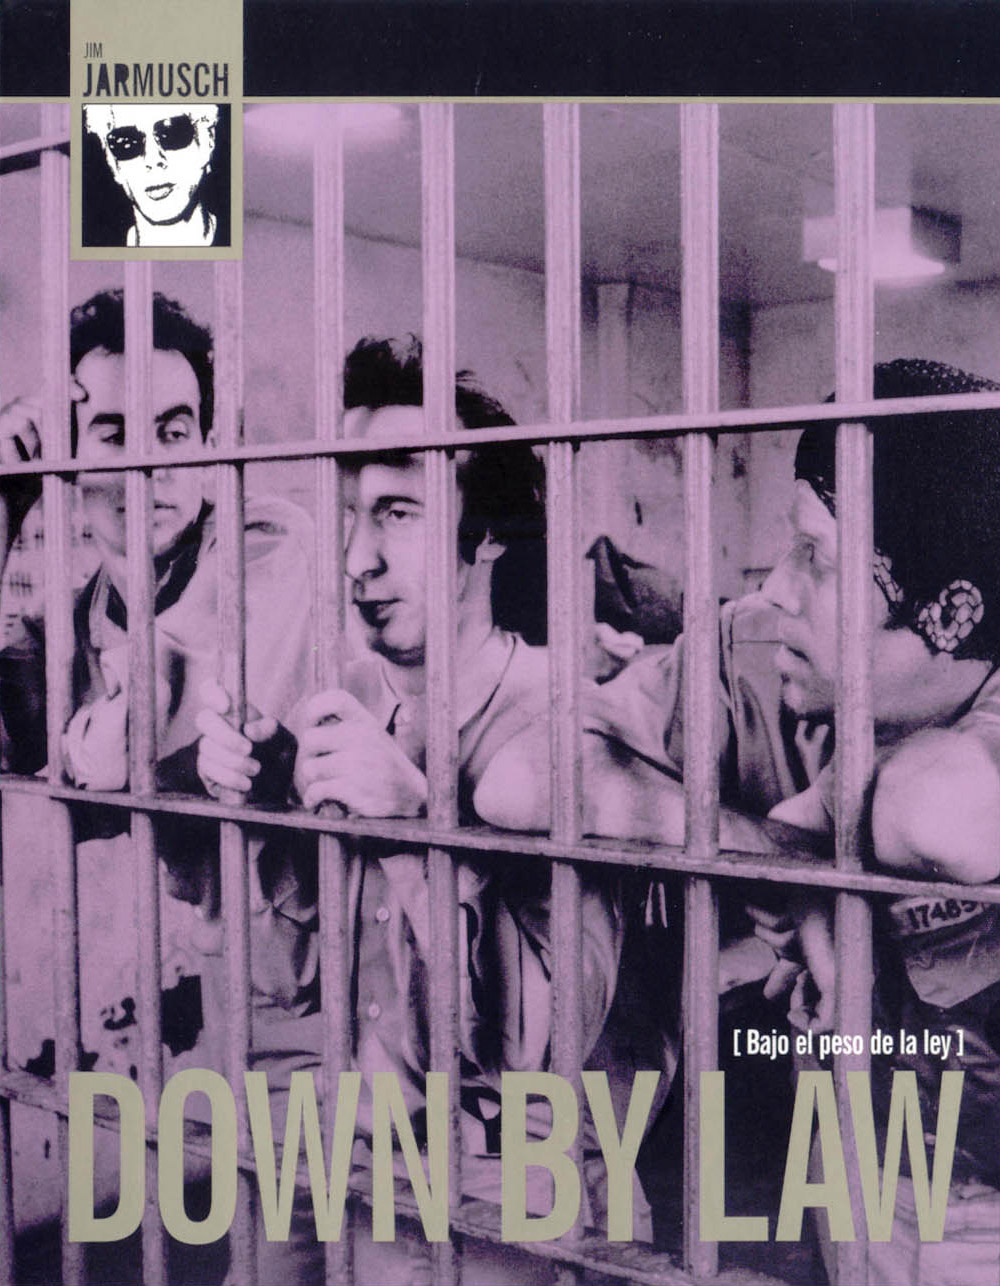 Down By Law | Jim Jarmusch | 1986